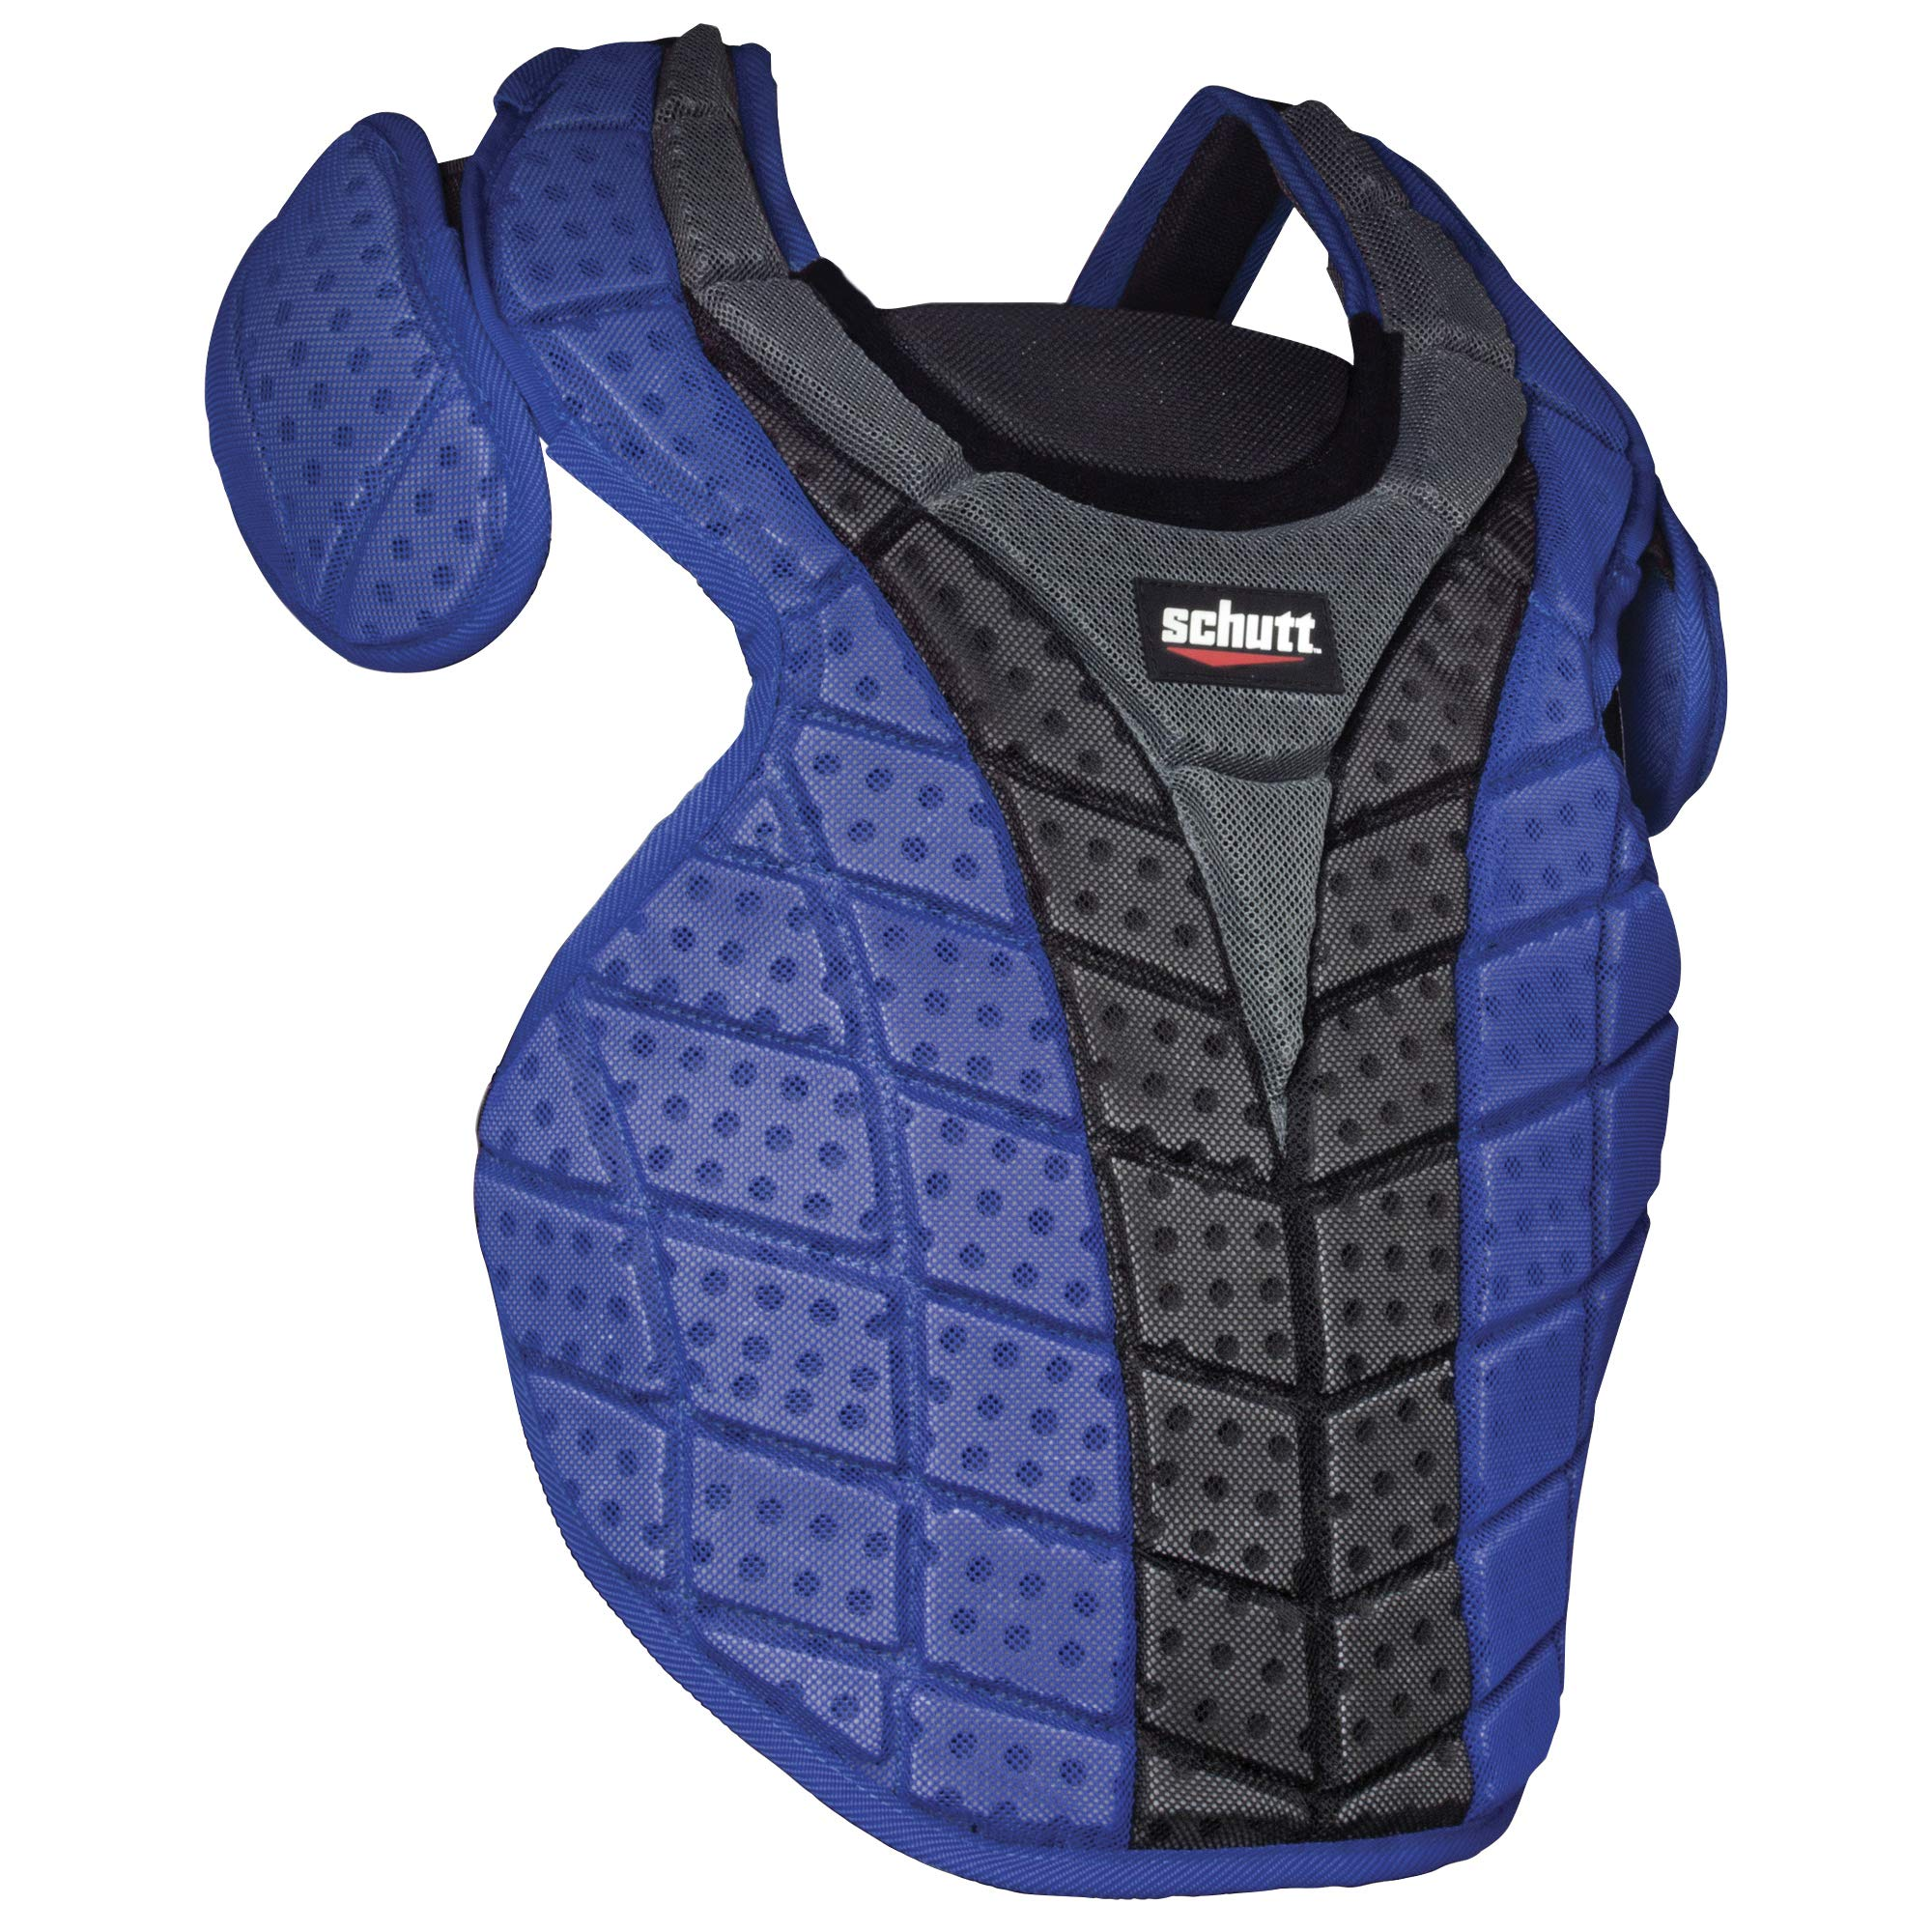 Schutt Scorpion 2.0 FP Chest Protector - 13'' (EA) by Schutt